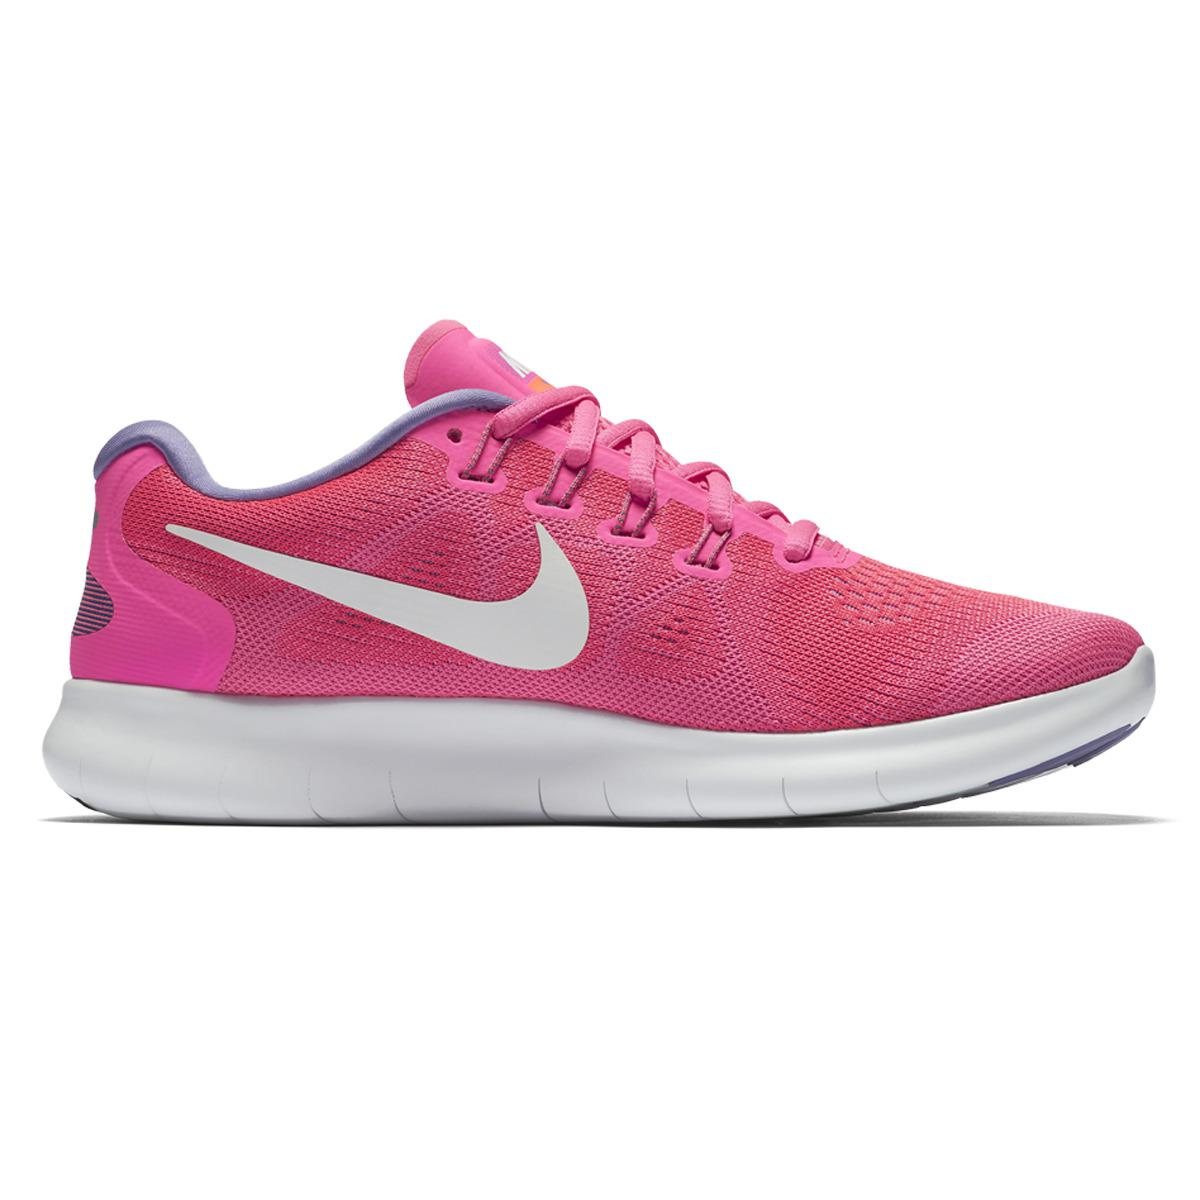 nike free run 2 running shoes in pink lyst. Black Bedroom Furniture Sets. Home Design Ideas